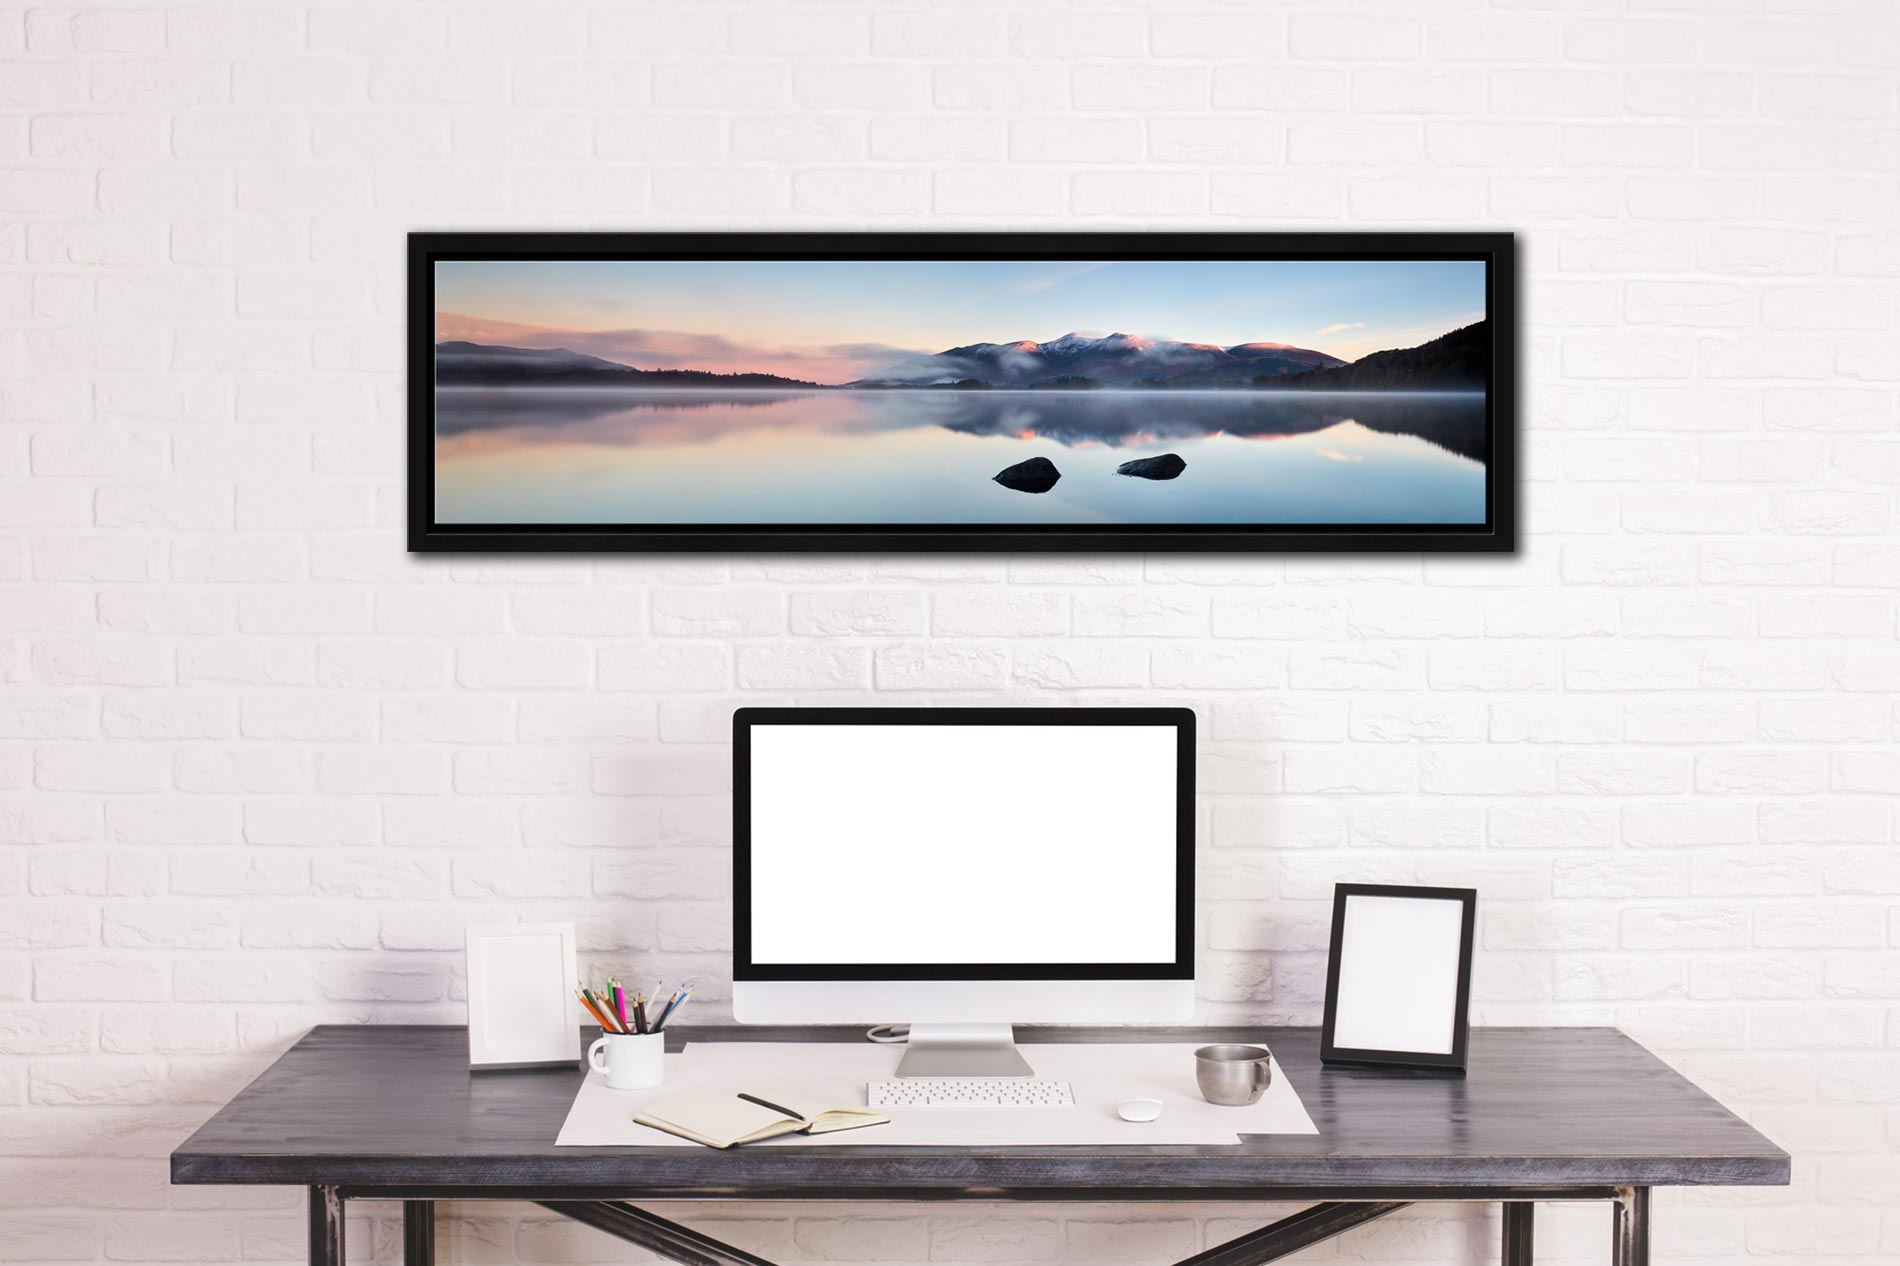 A New Day Dawns at Derwent Water - Black oak floater frame with acrylic glazing on Wall